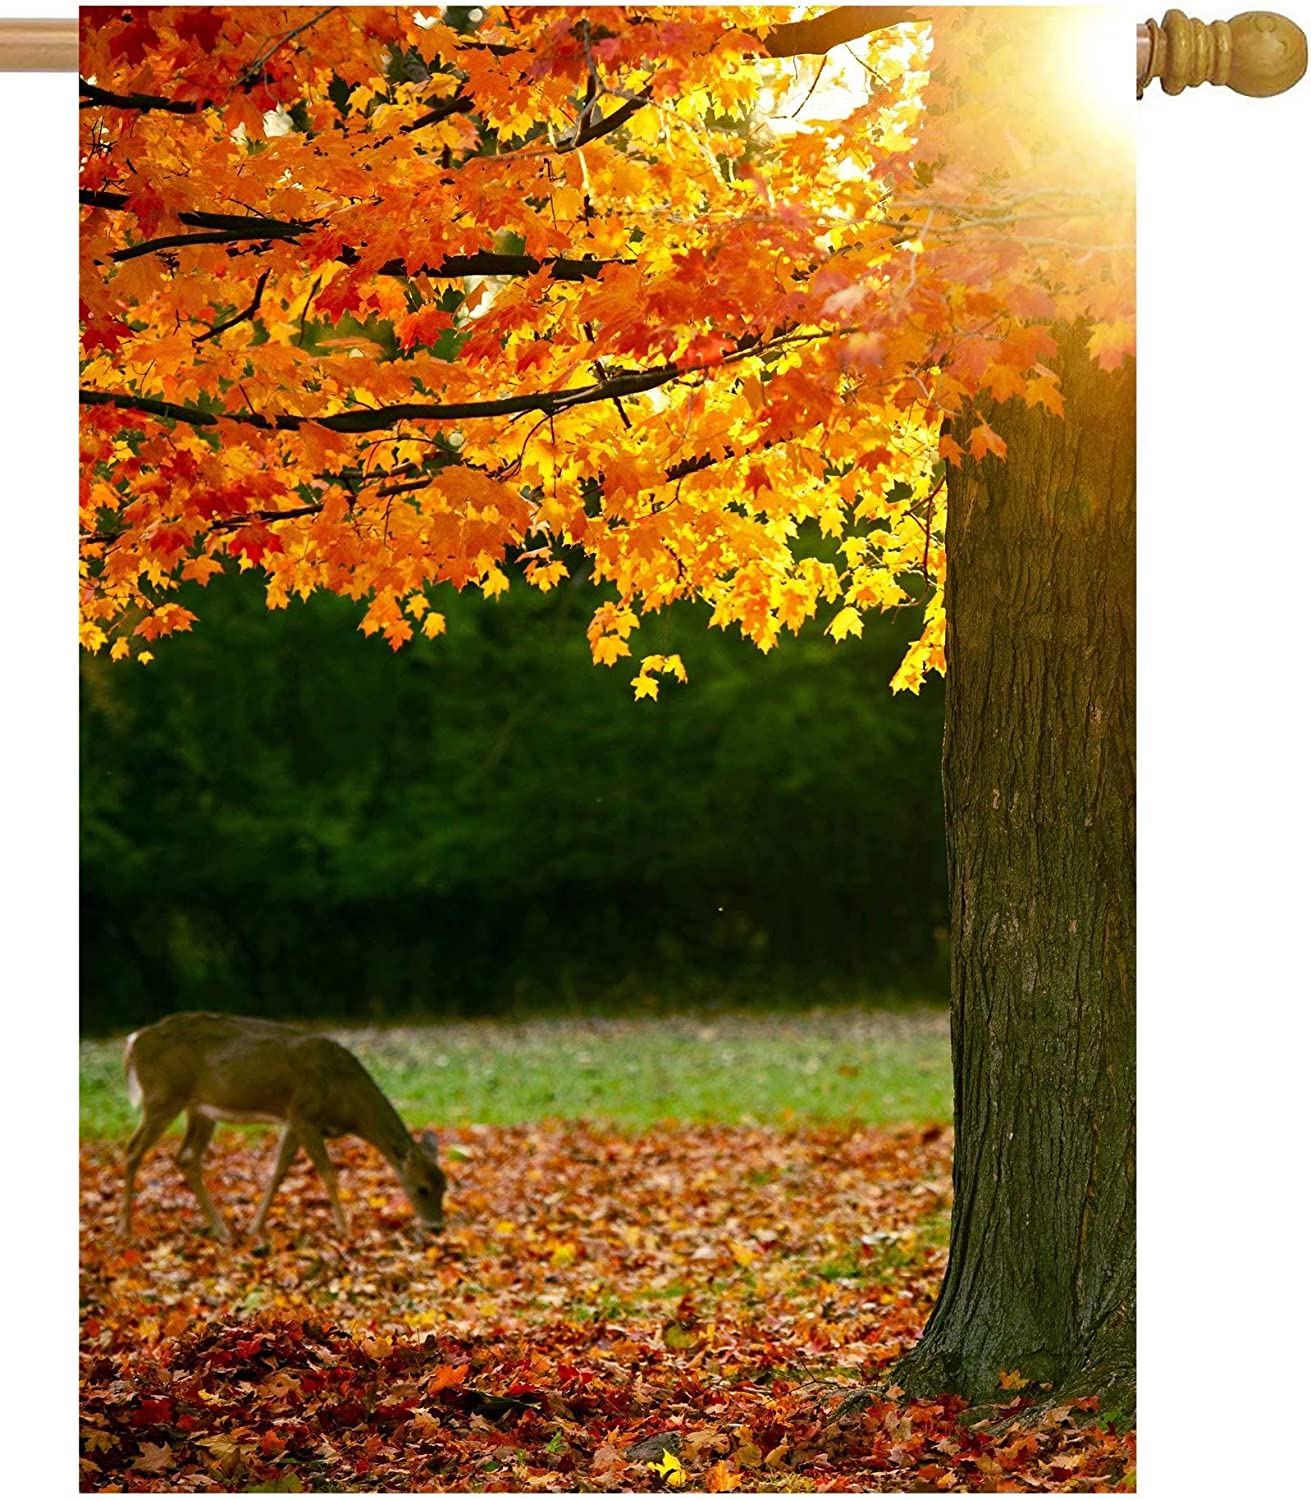 Shinesnow Autumn Forest Maple Tree Fall Leaves Animal Deer Golden Sunlight Seasonal House Flag 28 X 40 Double Sided Polyester Welcome Yard Garden Flag Banners For Patio Lawn Home Outdoor